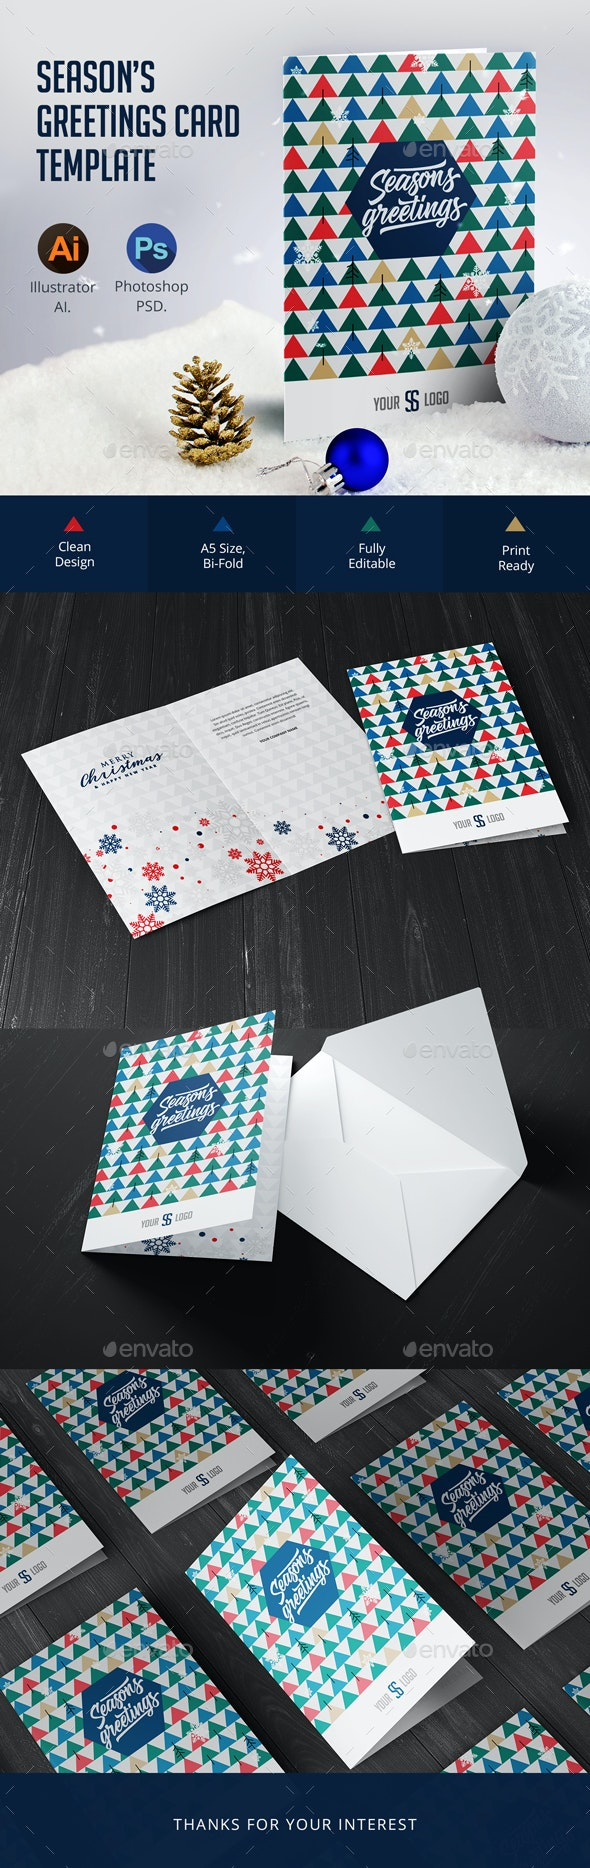 Season's Greetings Card Template - Greeting Cards Cards & Invites